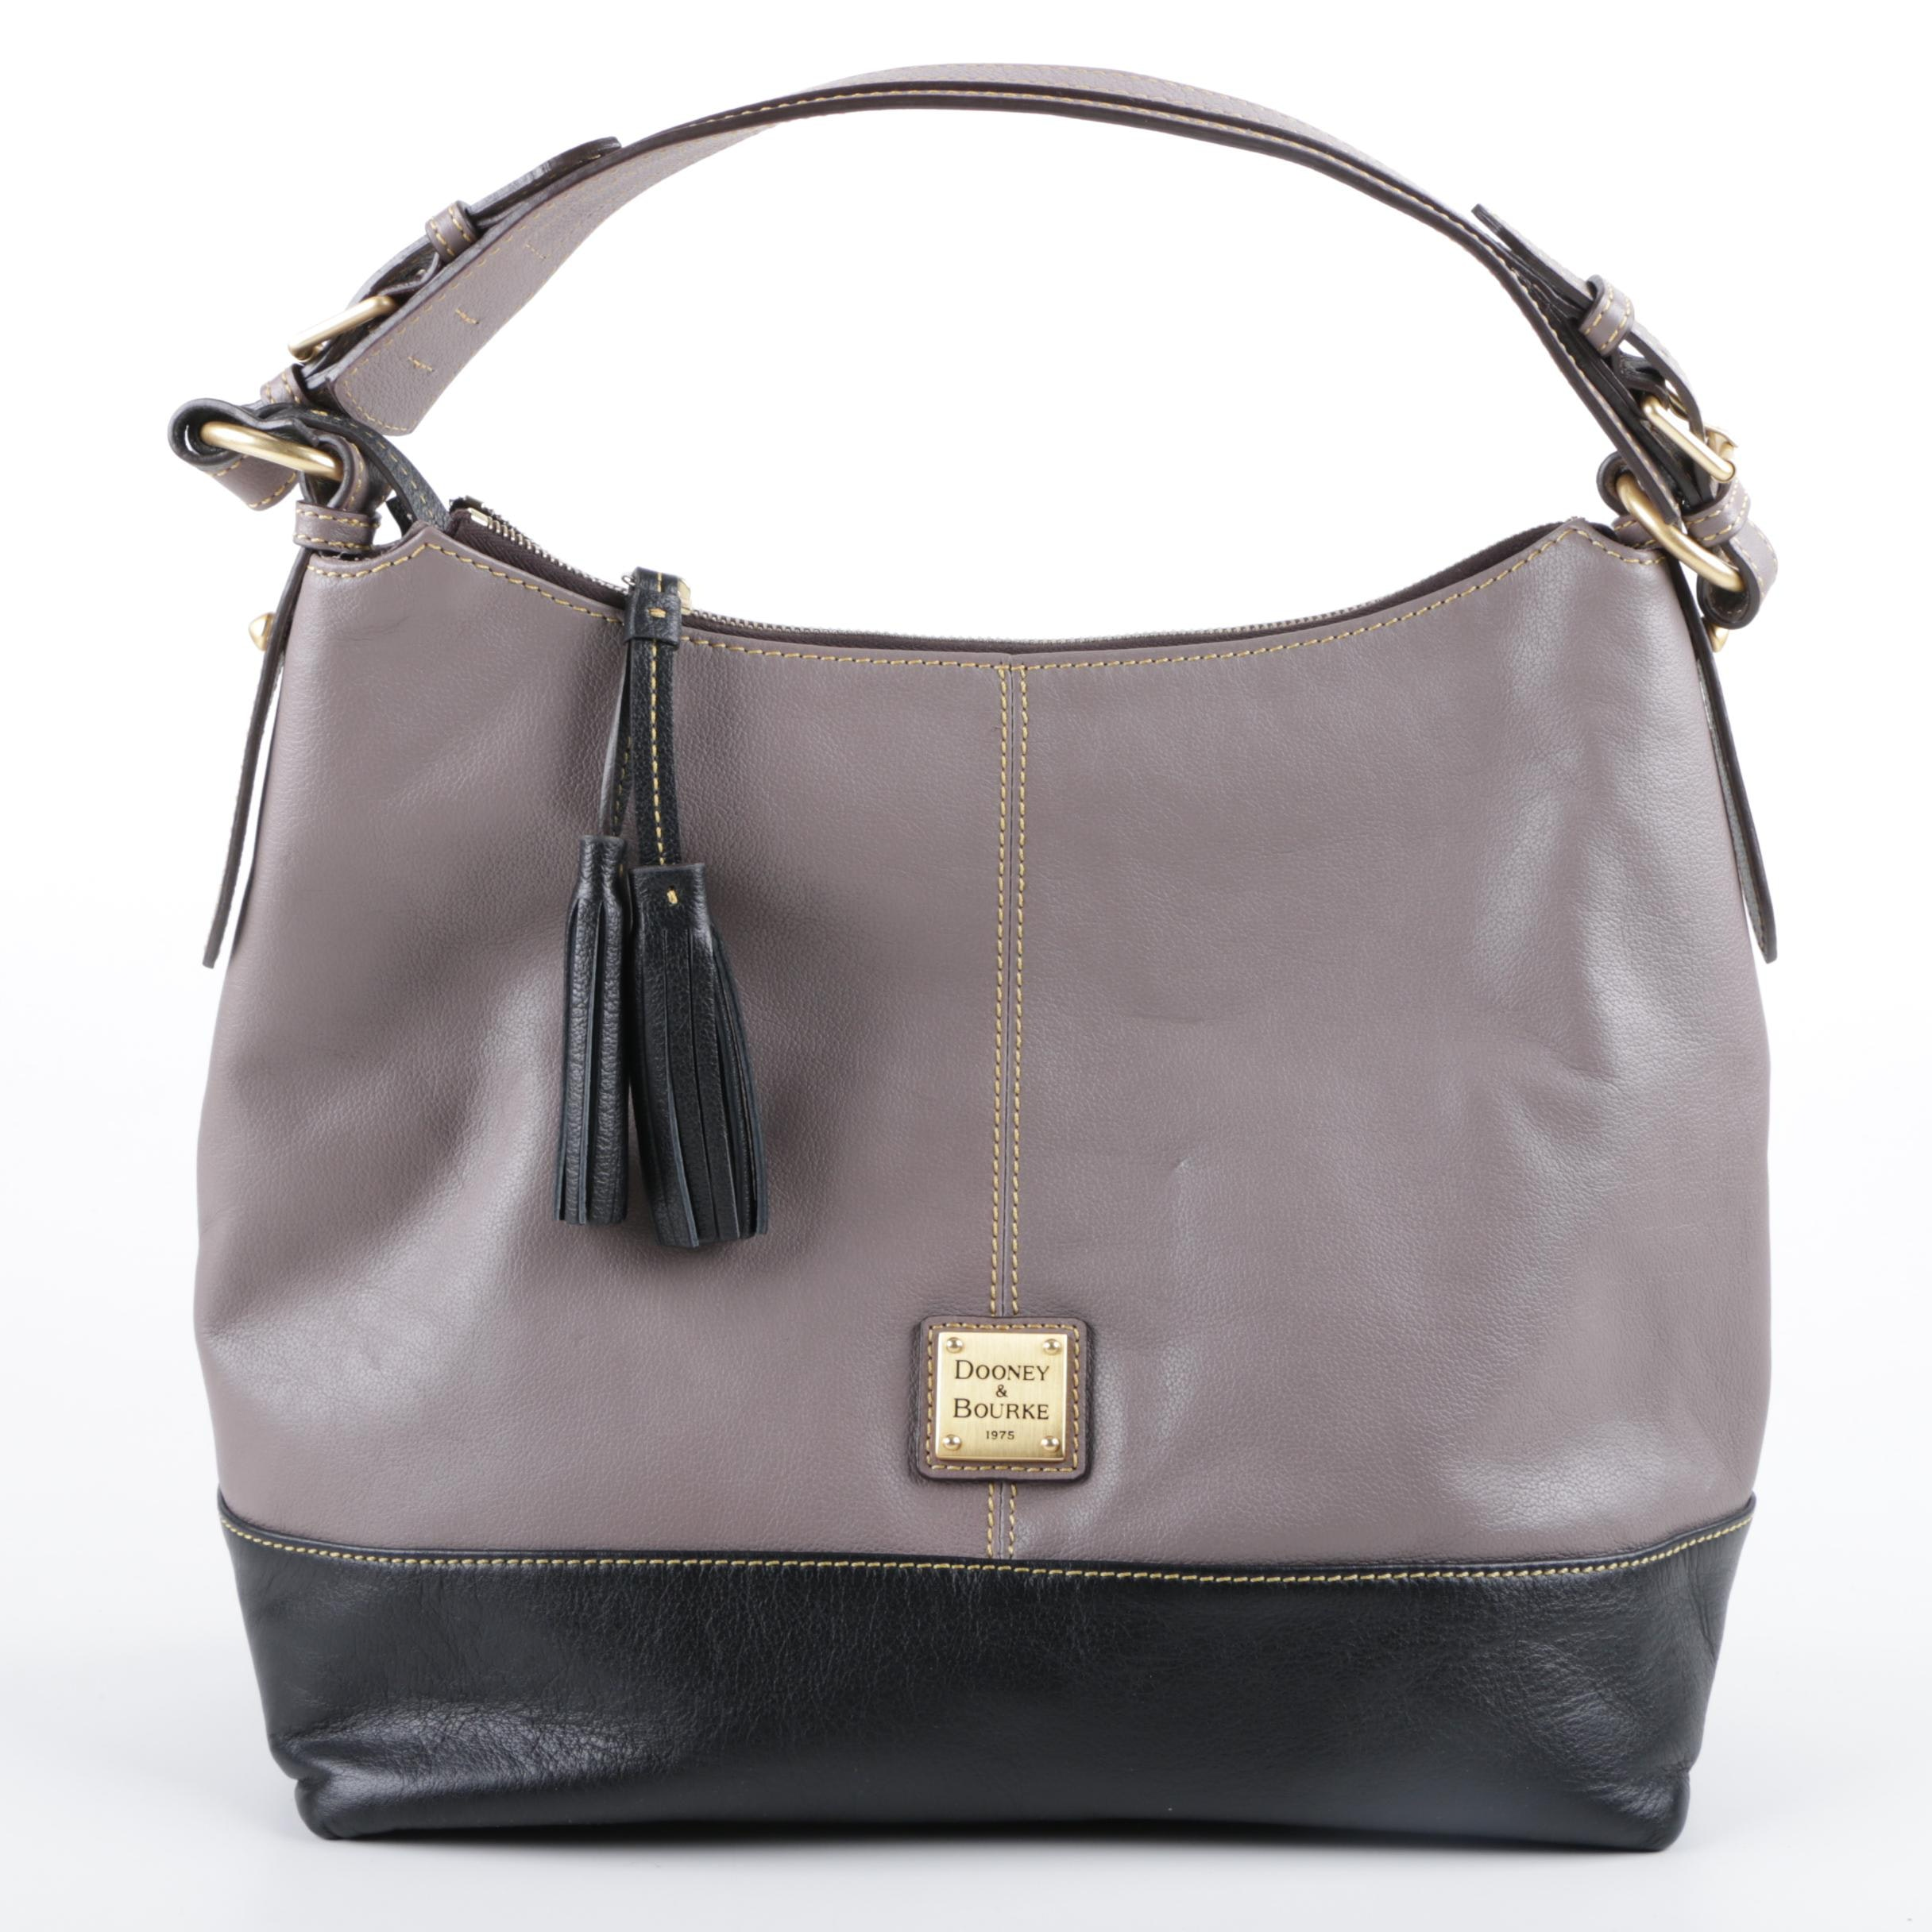 Dooney & Bourke Sophie Hobo Handbag in Black and Gray Leather